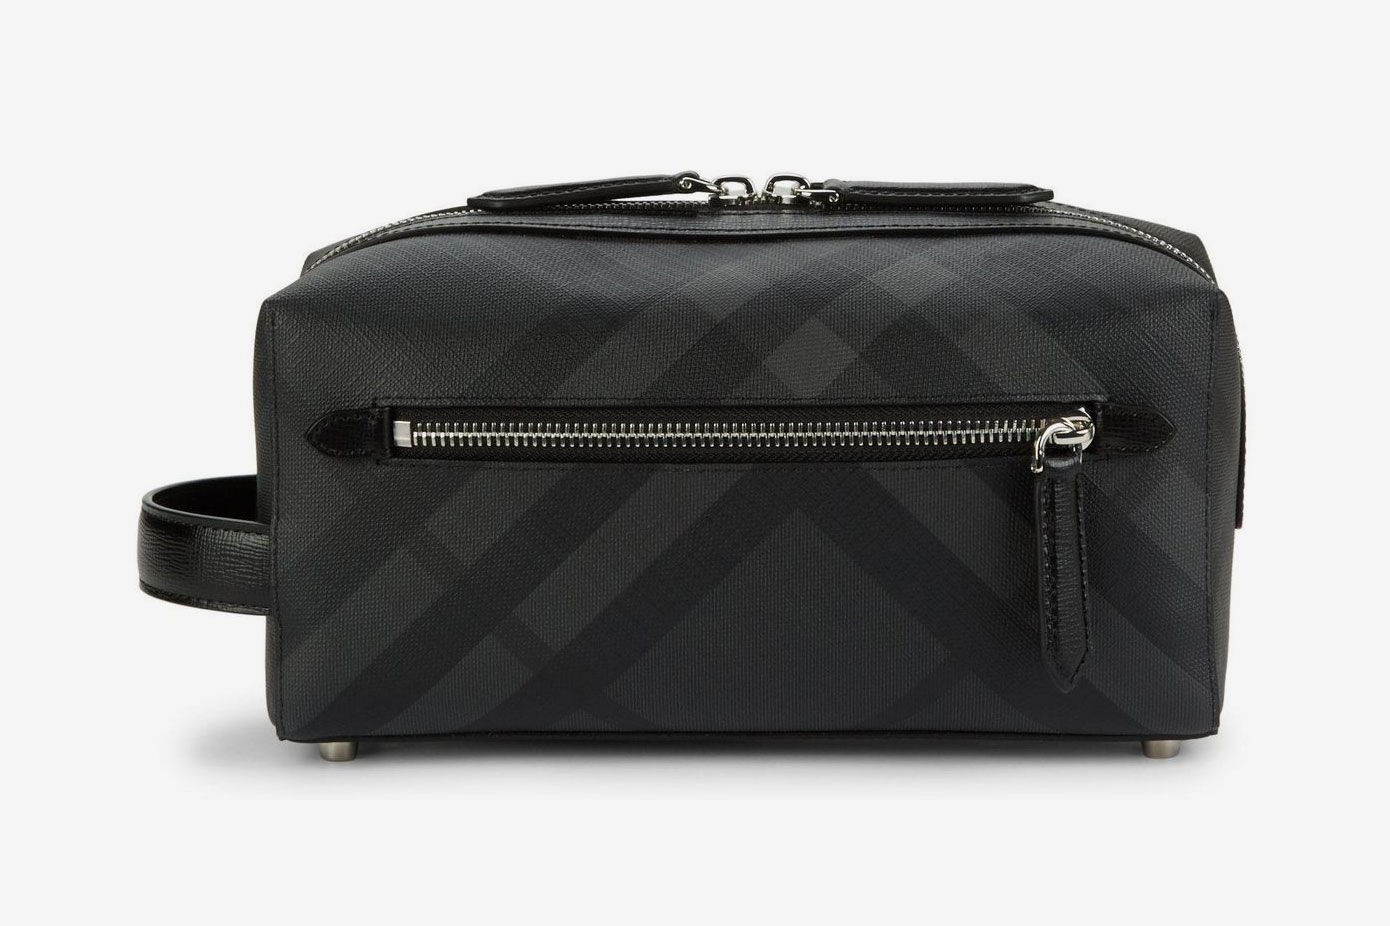 b5c3ddc91ef Burberry Check Dopp Kit at Saks Fifth Avenue